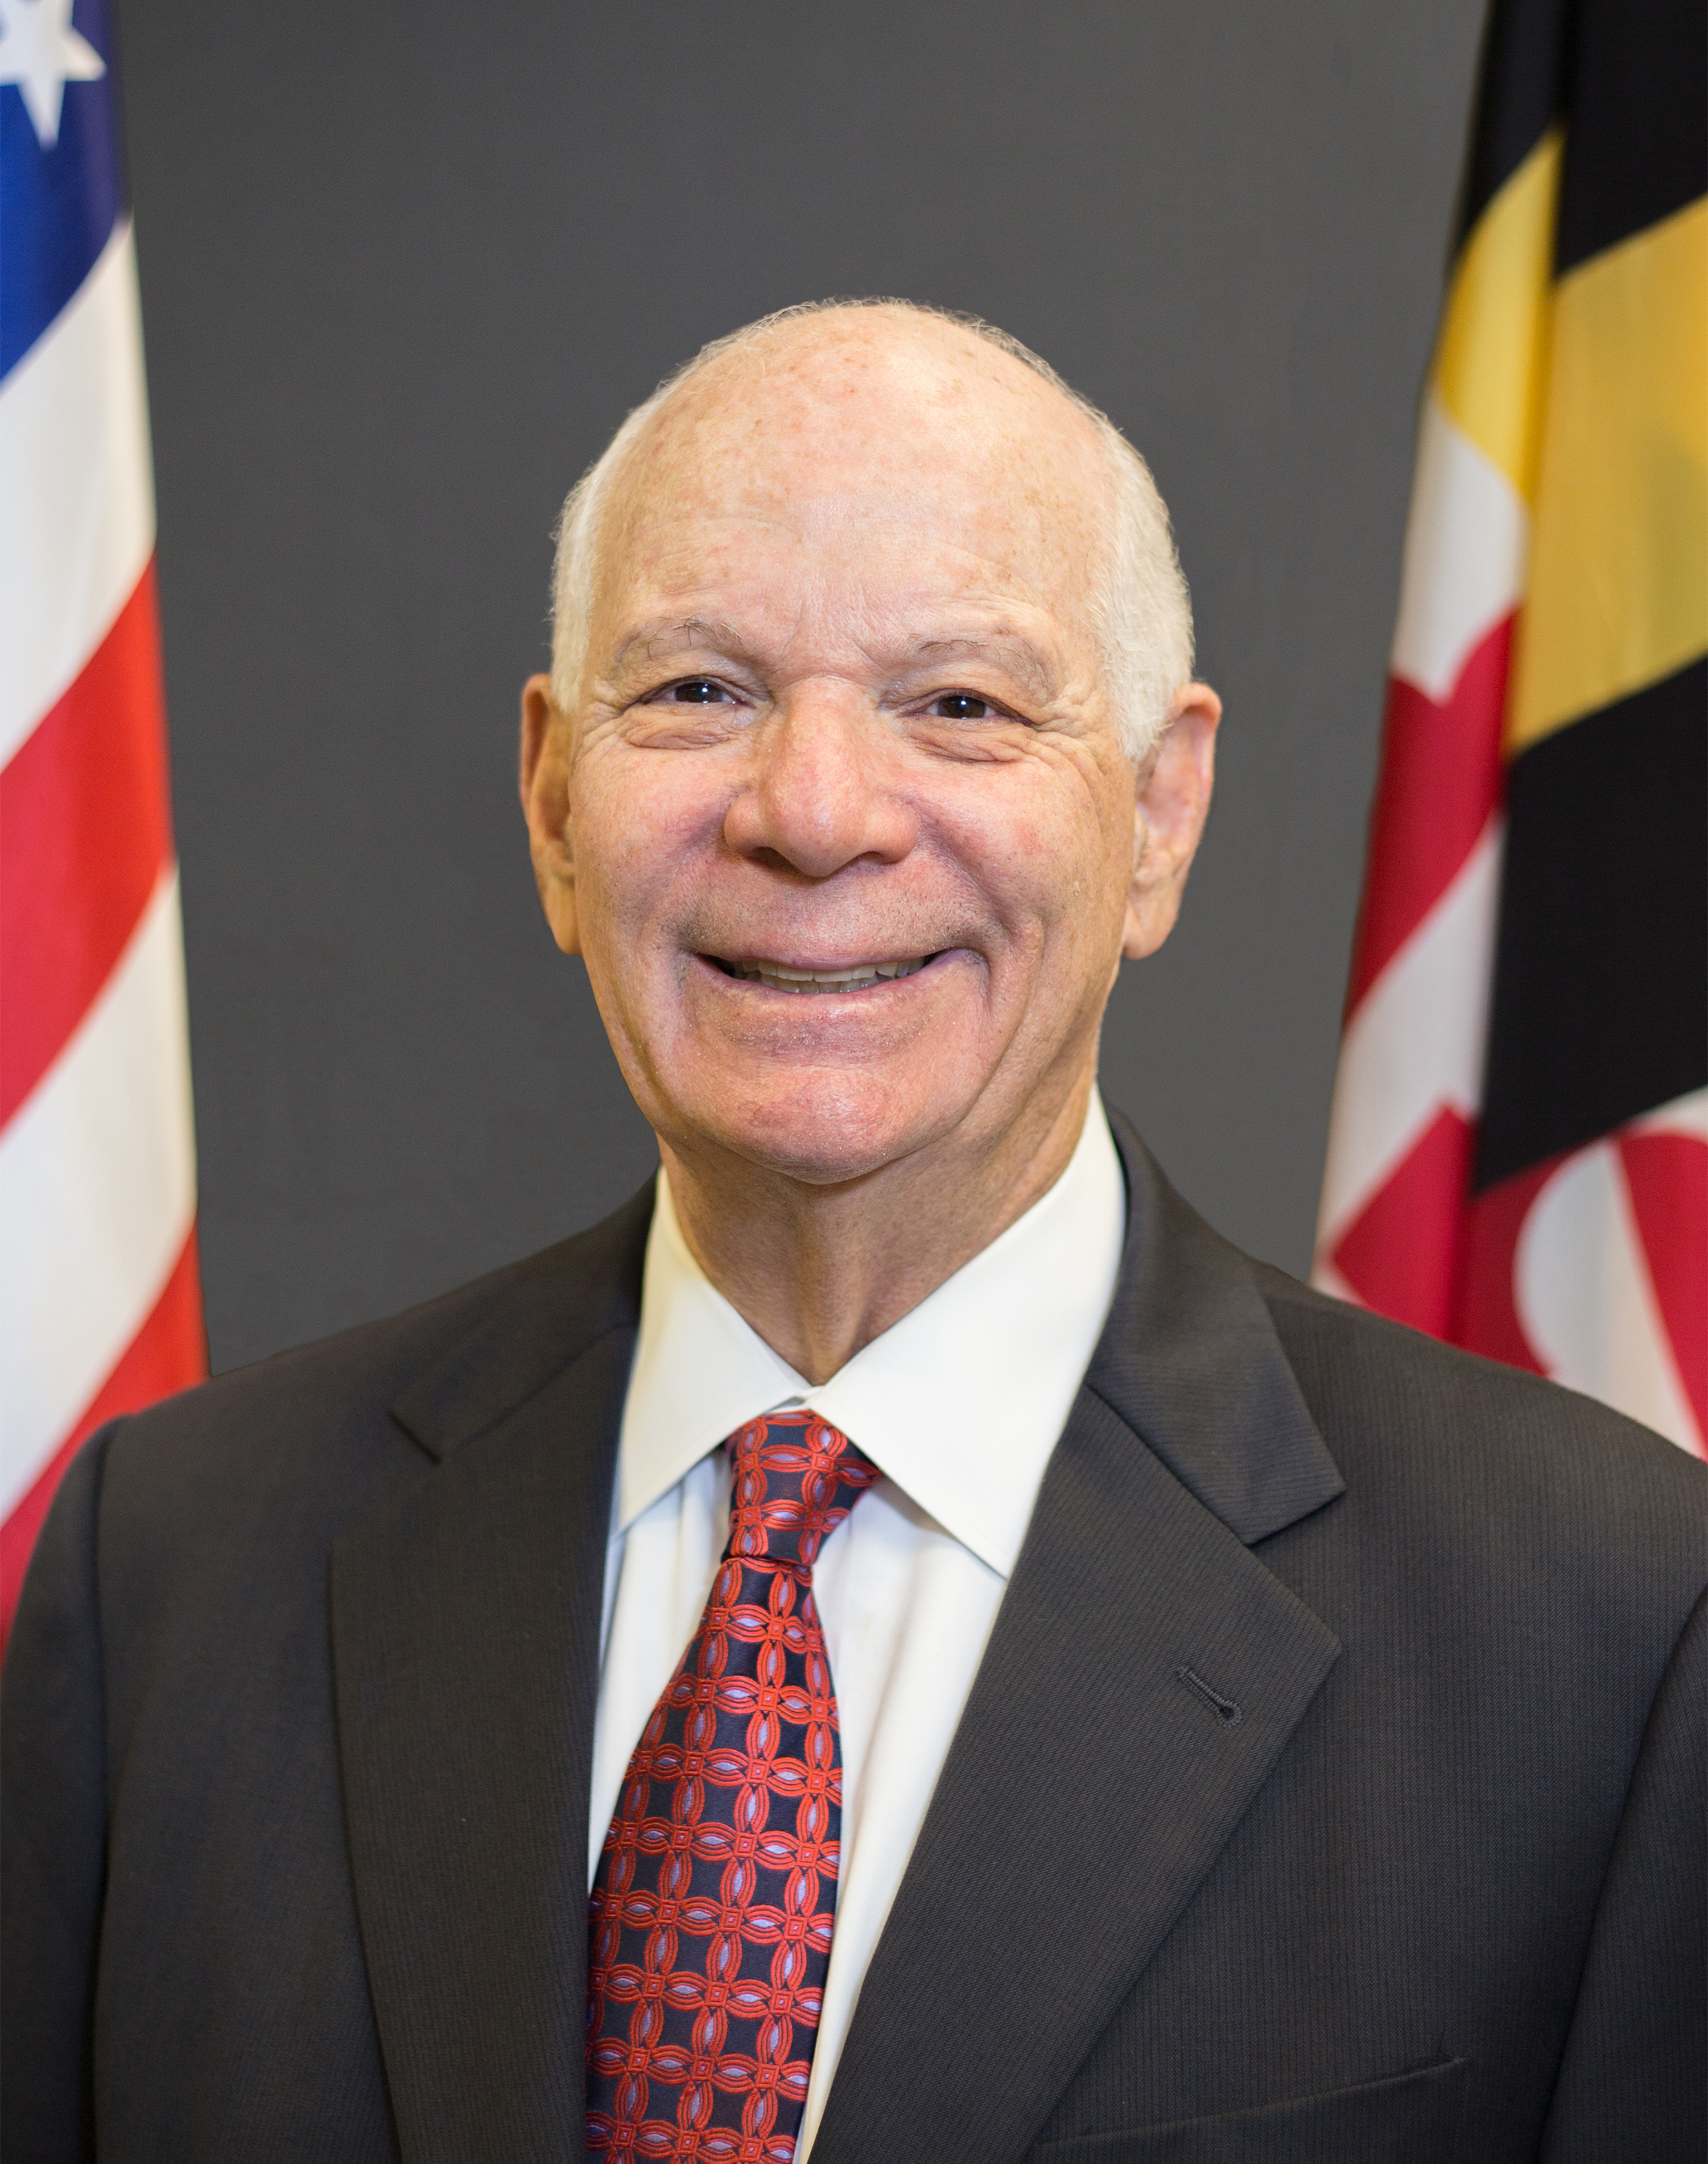 U.S. Senator Ben Cardin to Host Virtual Town Hall Meeting with County Leaders